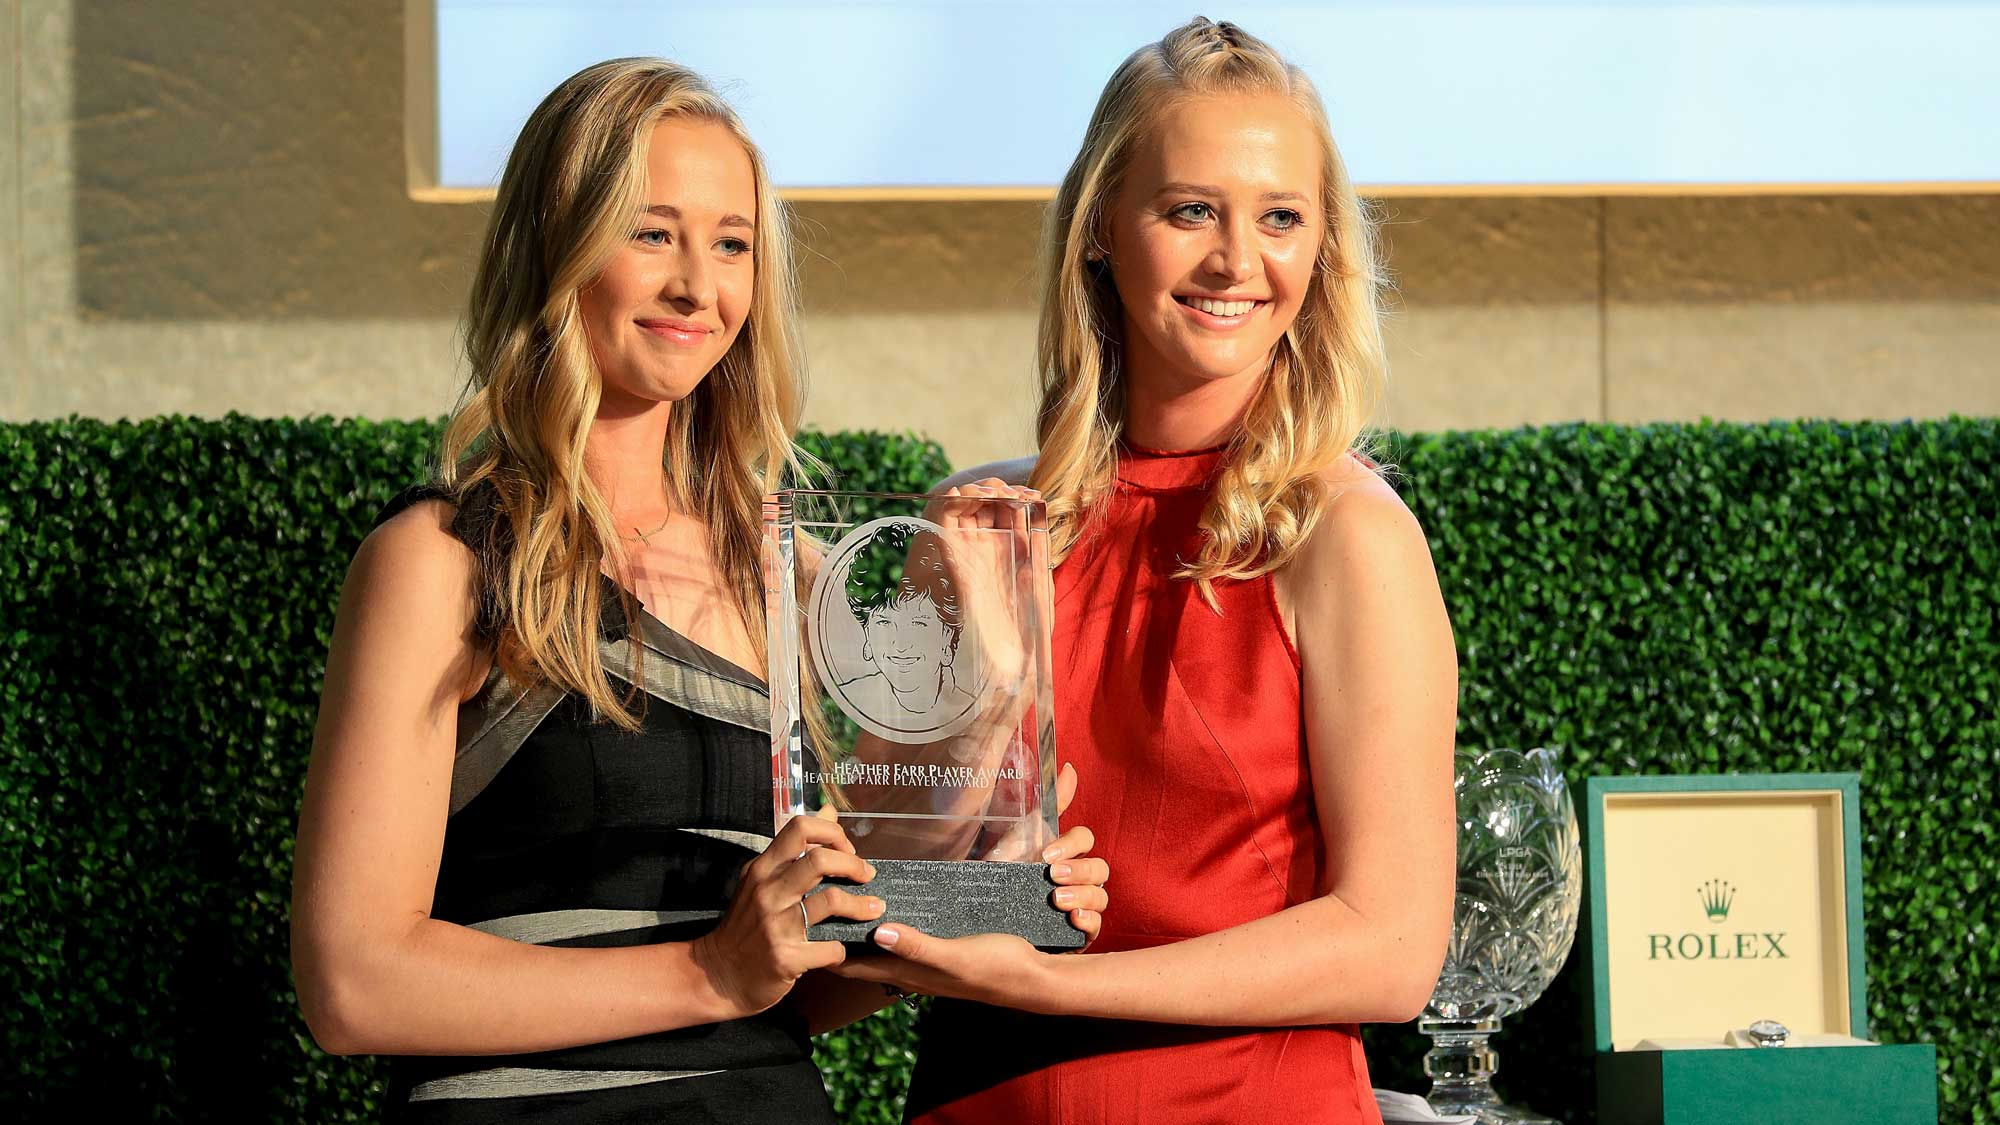 Home Lpga Ladies Professional Golf Association Smie On 7 Pin Trailer Connector Wiring Diagram For Nelly Korda Presents Jessica With The Heather Farr Pererverance Award During Rolex Players